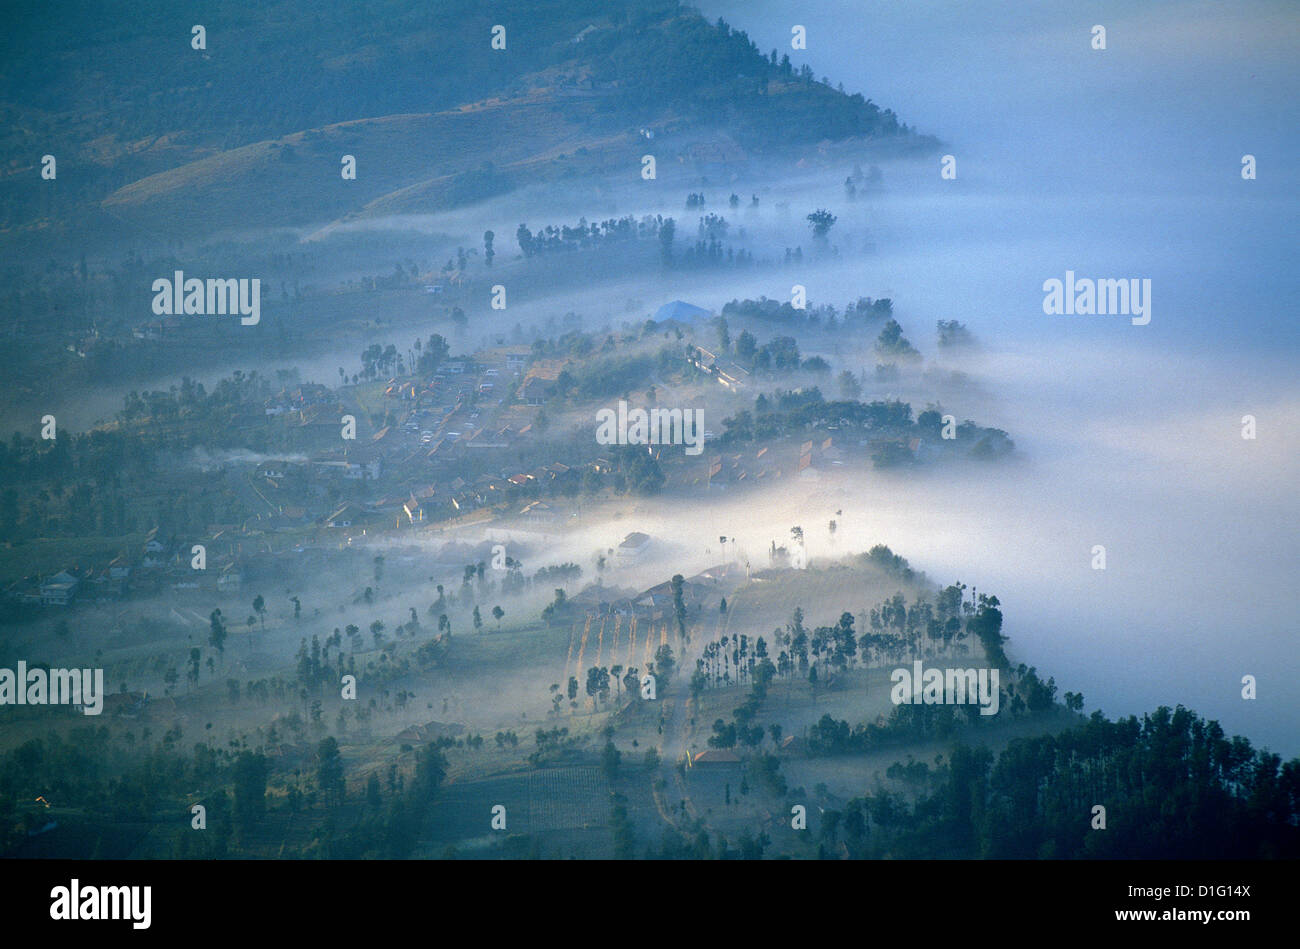 Caldeira and Bromo at 2329 m, and Semeru at 3676 m, volcanoes on Java, Indonesia, Southeast Asia, Asia - Stock Image